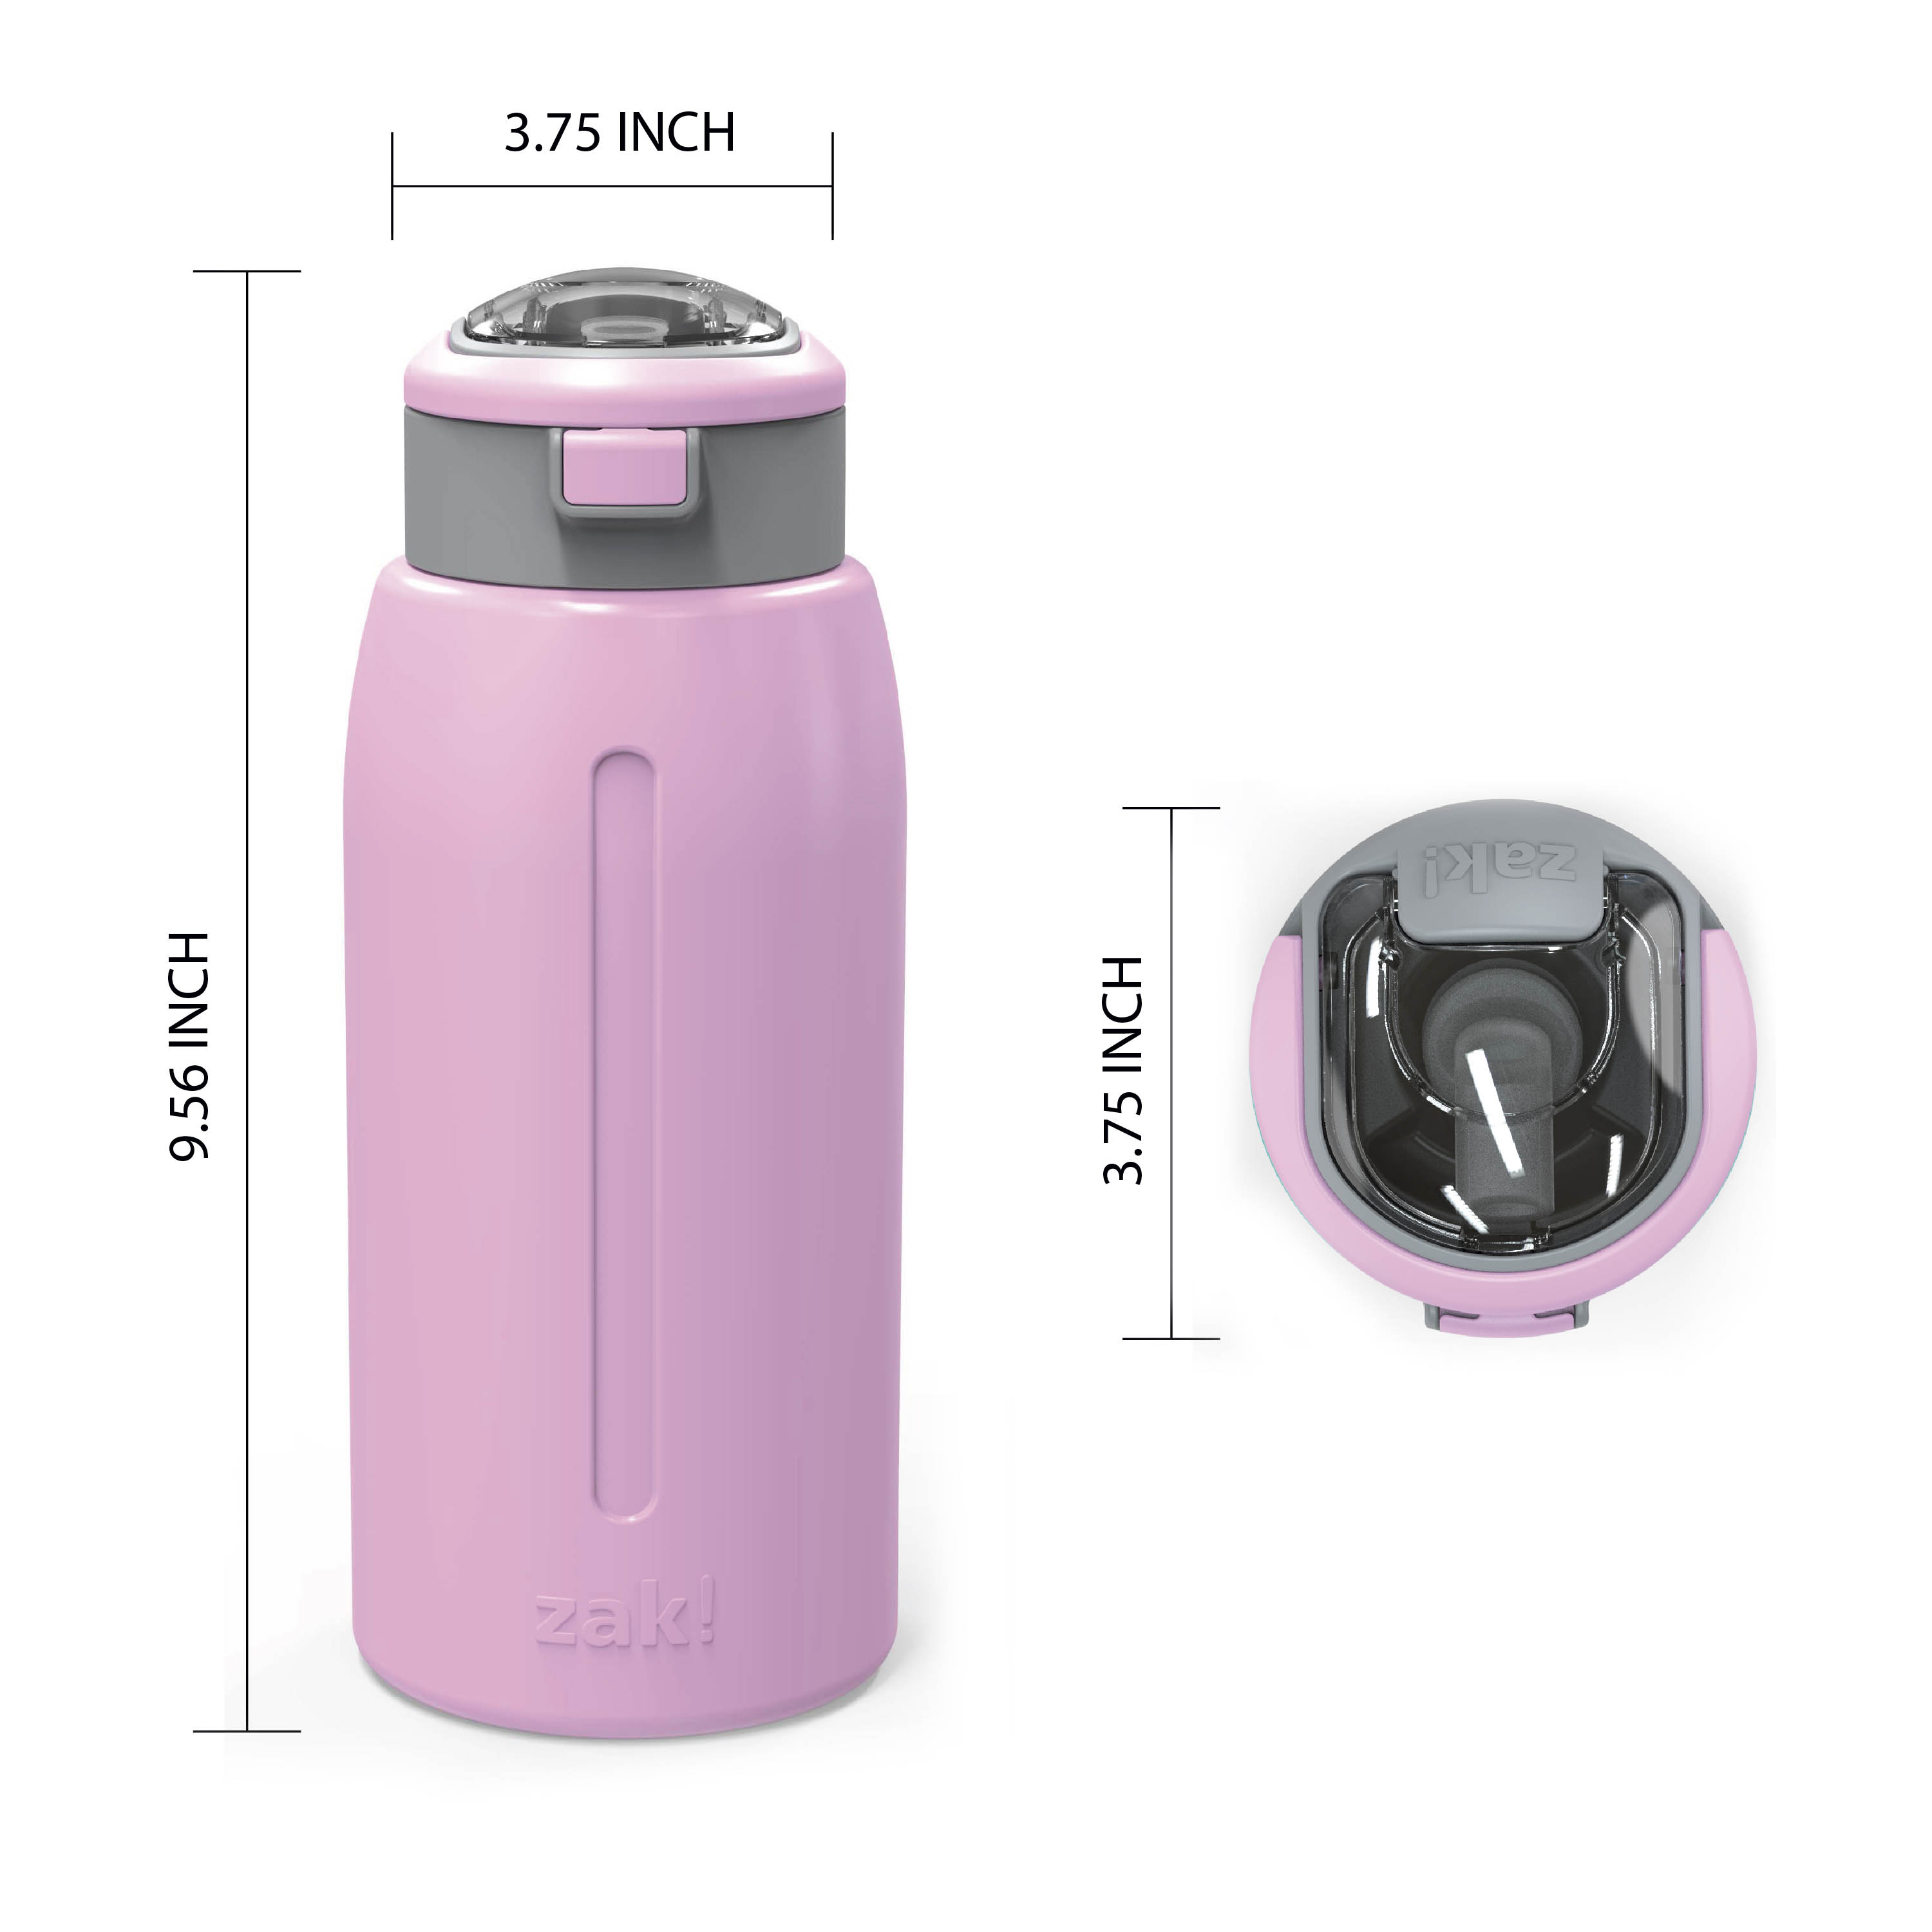 Genesis 32 ounce Stainless Steel Water Bottles, Lilac slideshow image 6